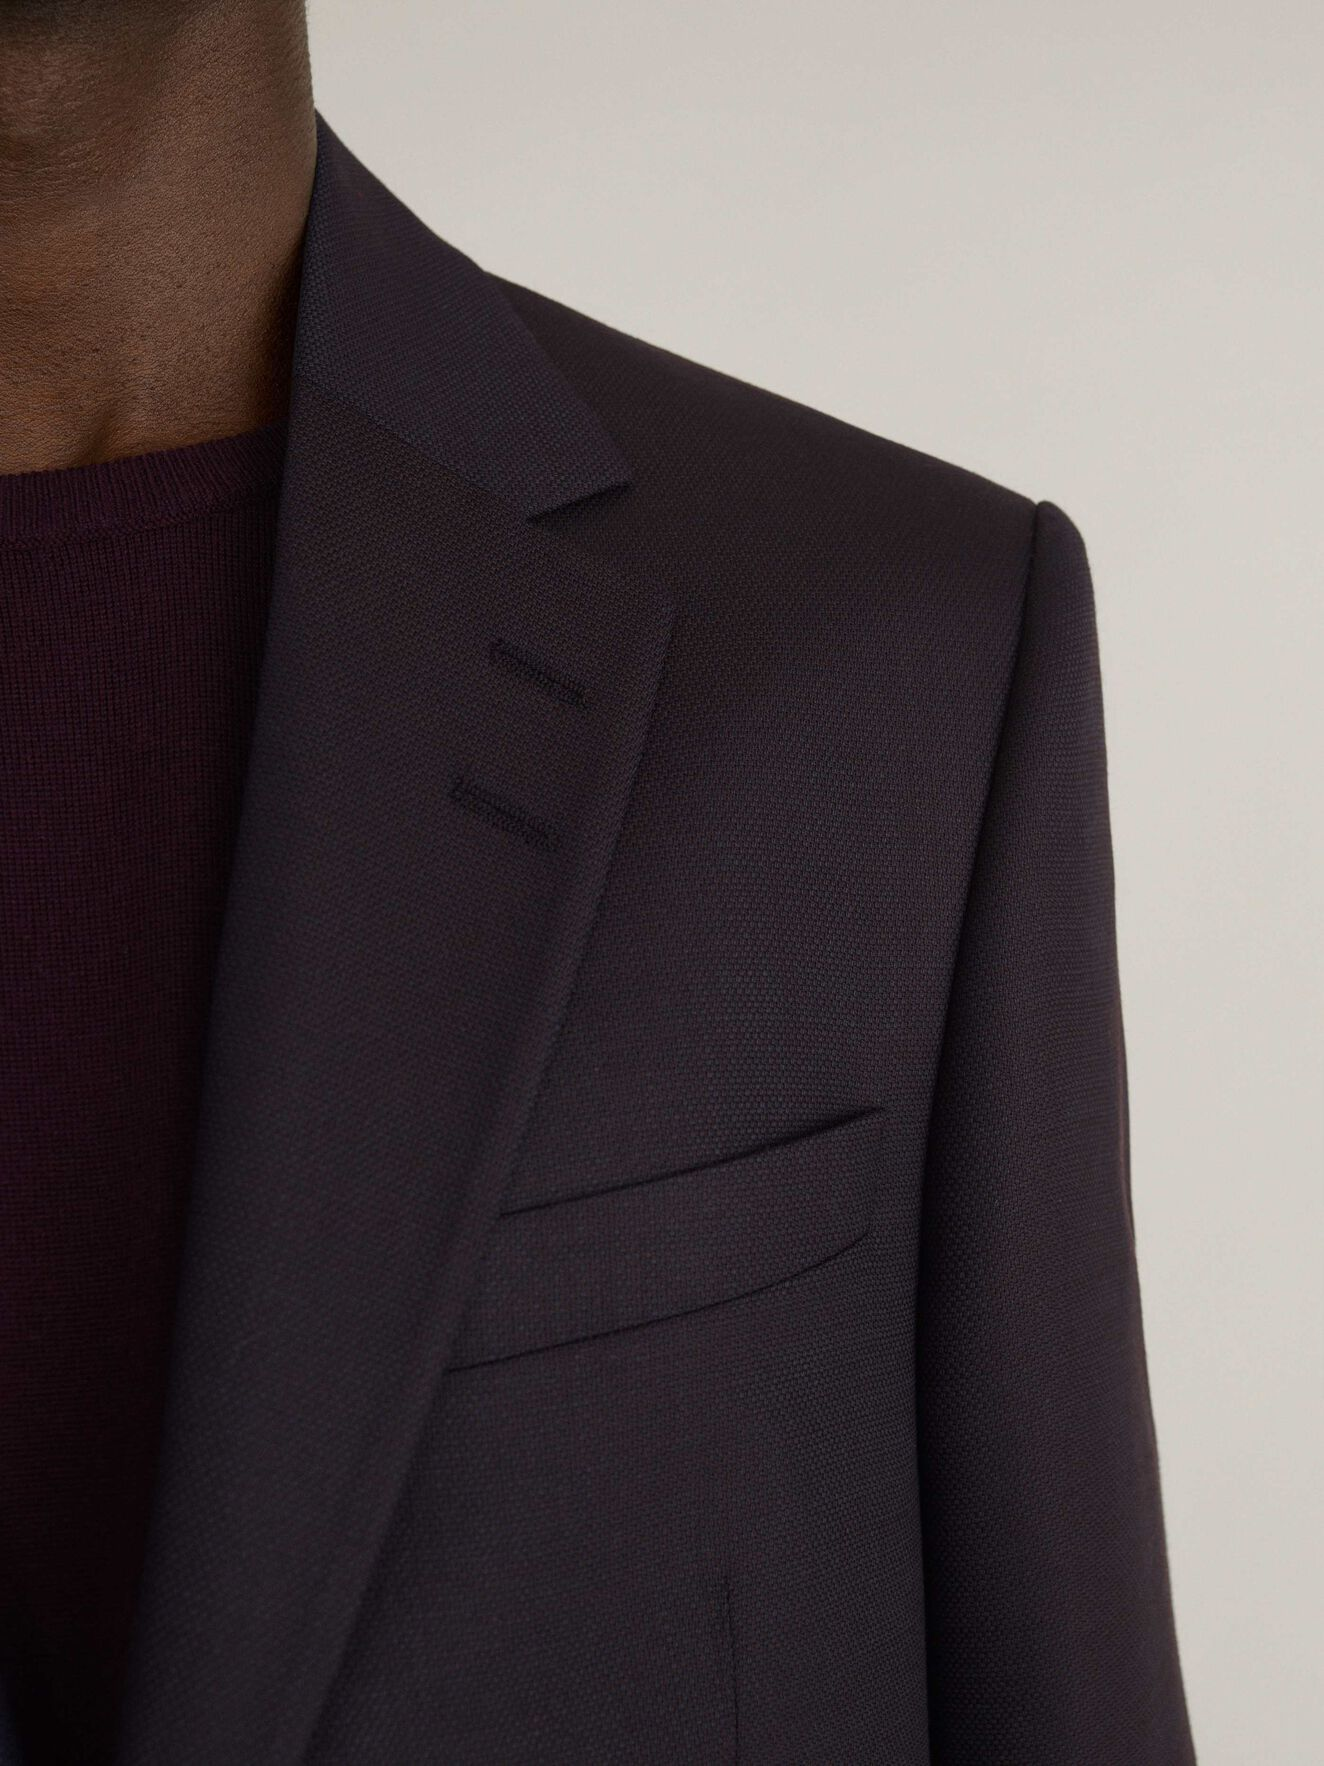 Jamonte Blazer in Noon Plum from Tiger of Sweden